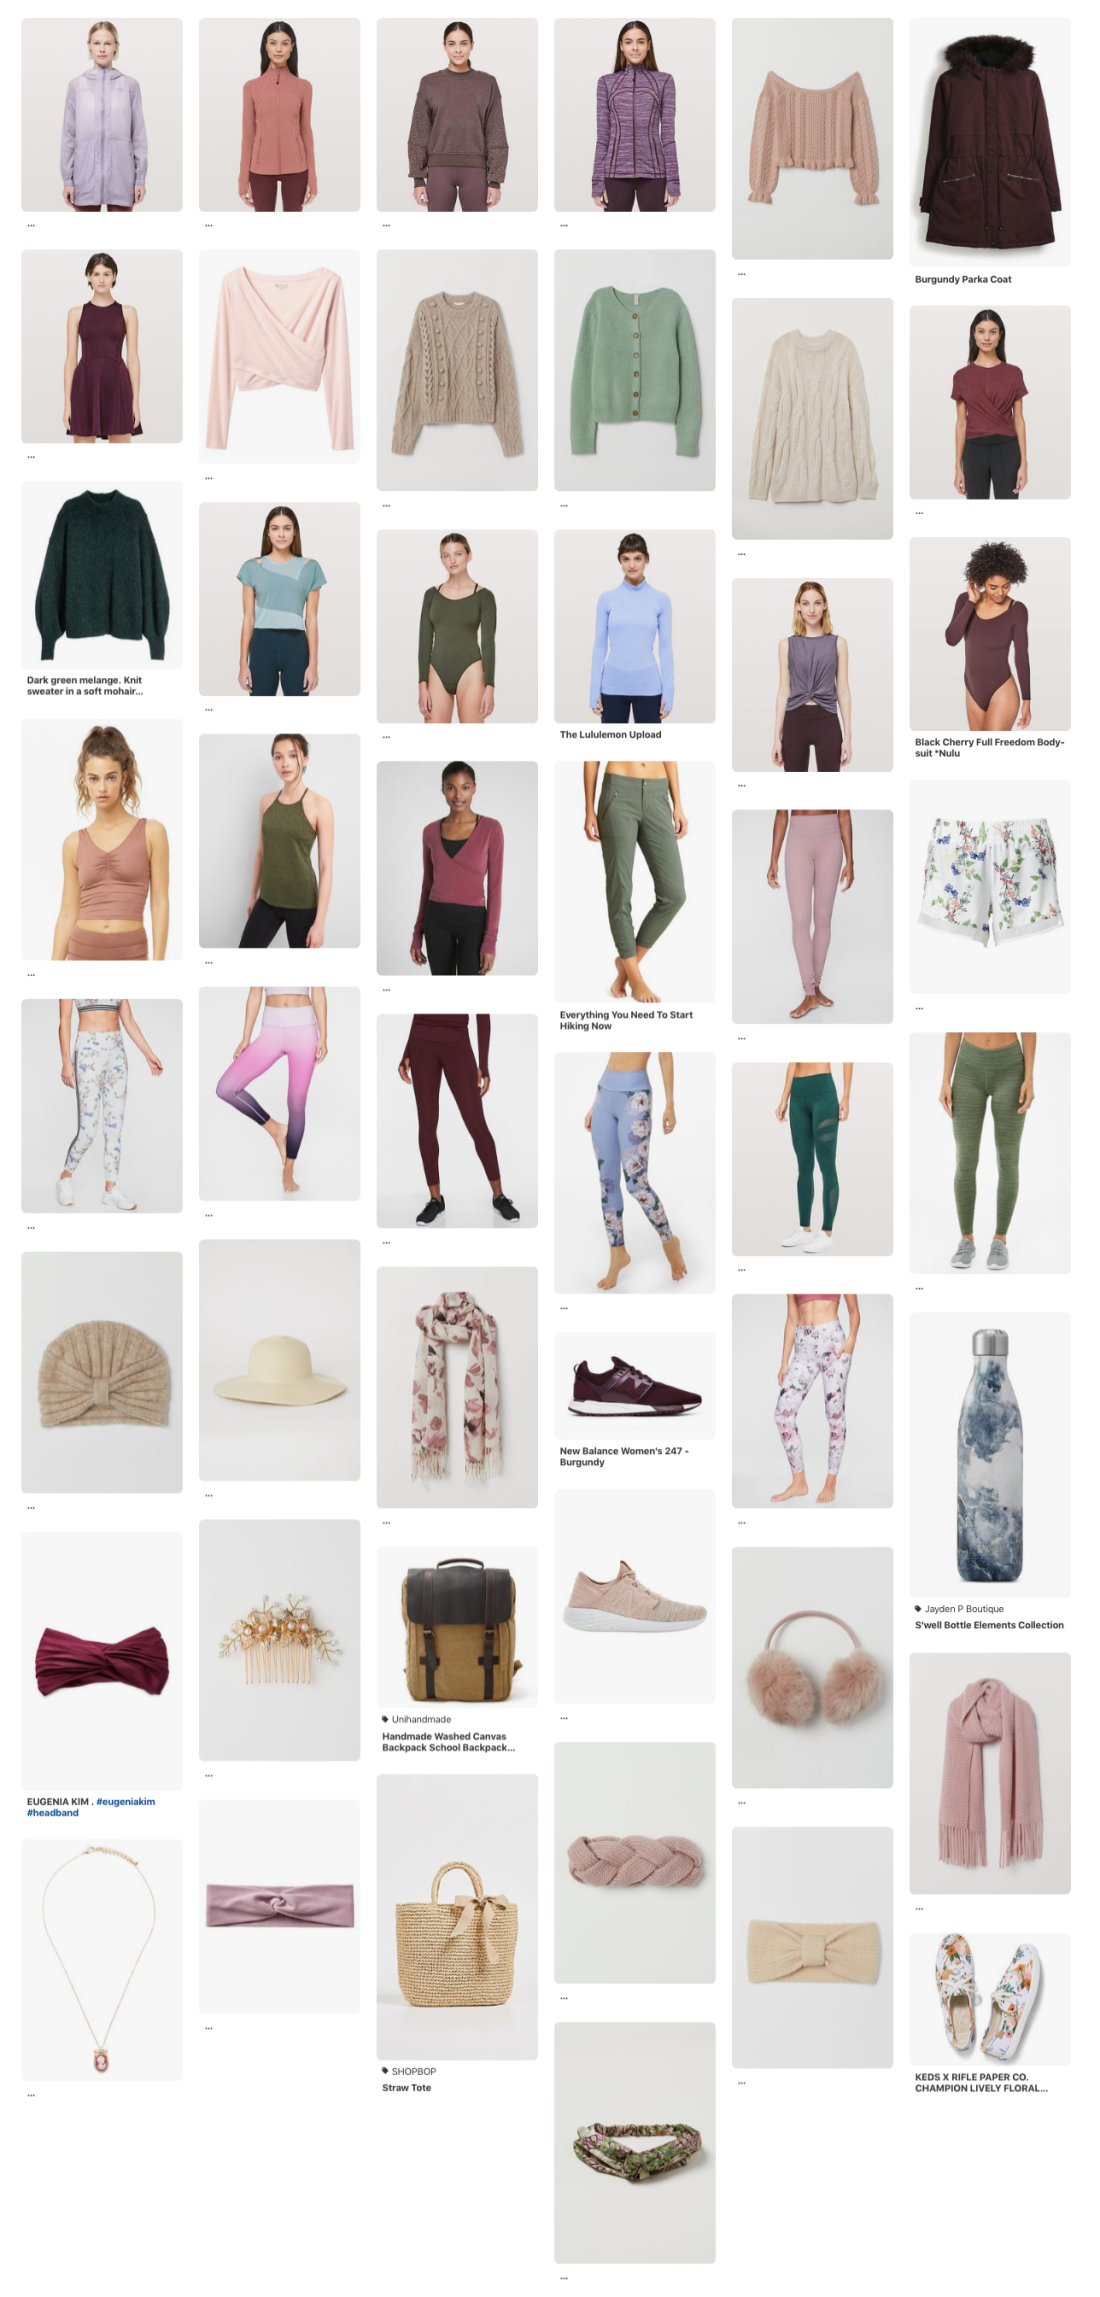 screencapture-pinterest-ter4gr4m-tea-time-style-athleisure-wardrobe-2019-02-02-11_05_41